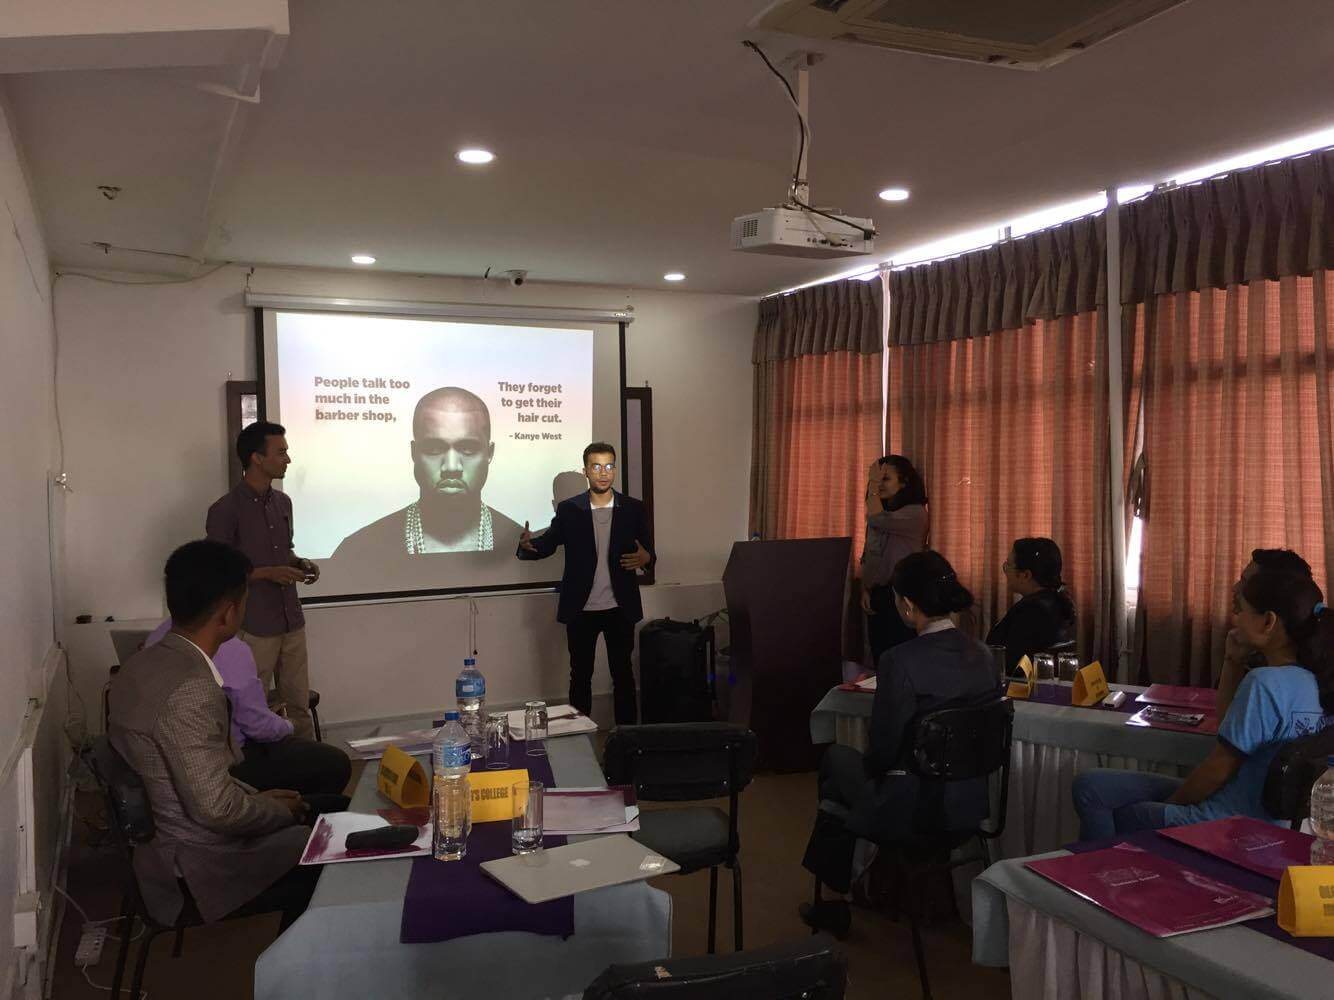 King's Participates in Business Communication Seminar